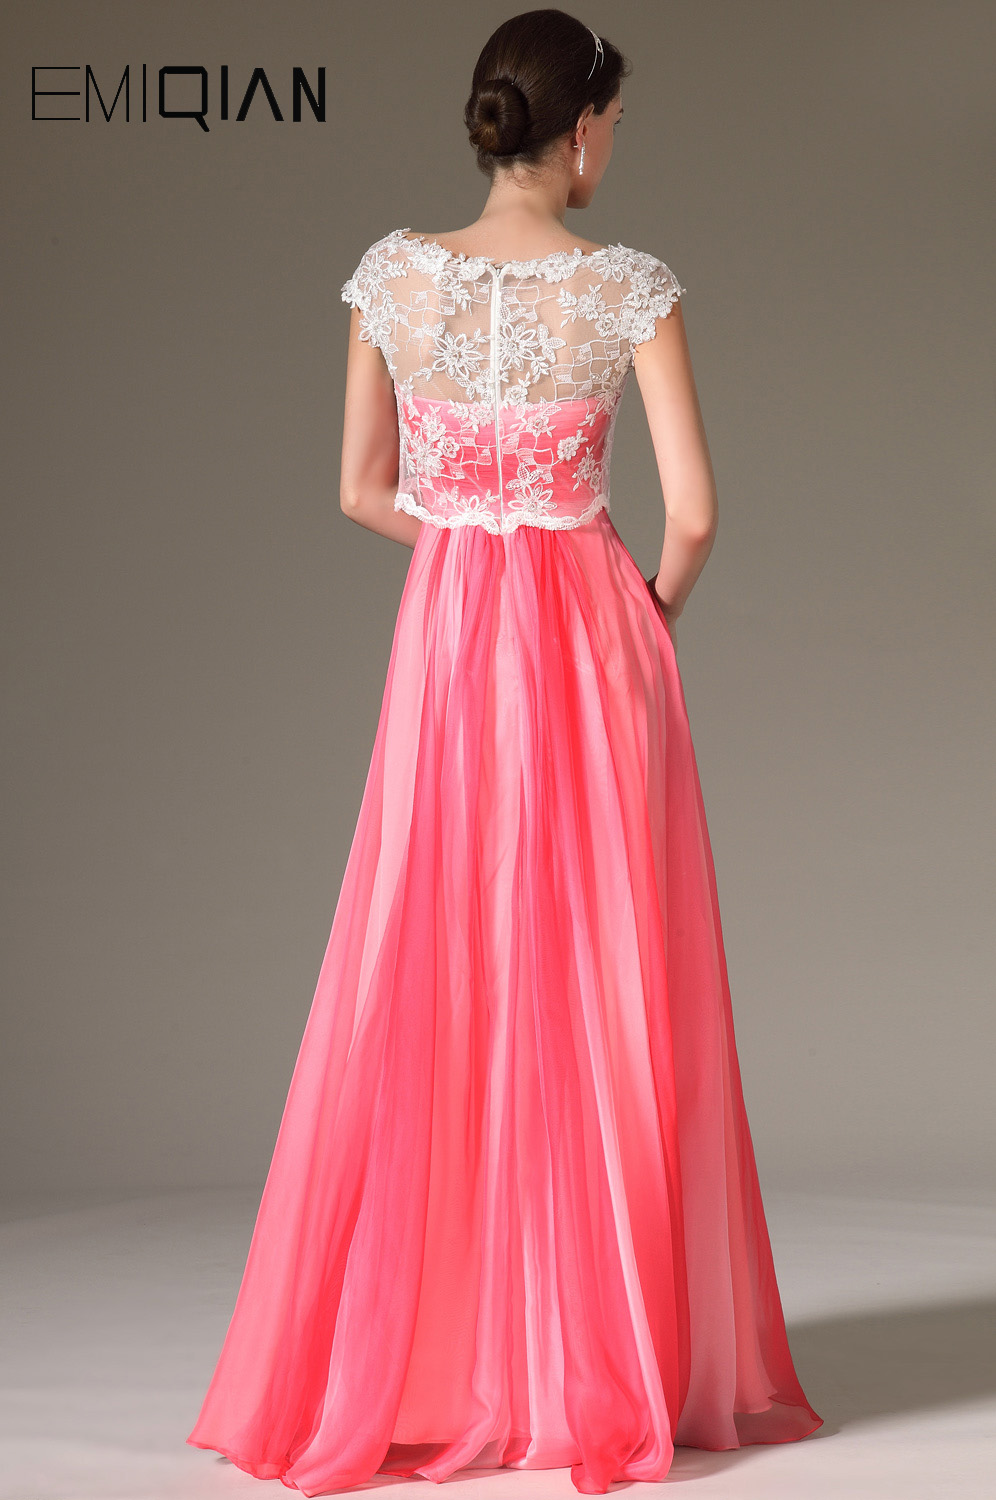 Free Shipping New Cap Sleeves Chiffon Evening Gowns Formal Women Dresses  with White Lace Jacket-in Evening Dresses from Weddings   Events on  Aliexpress.com ... 8e154cf59e58